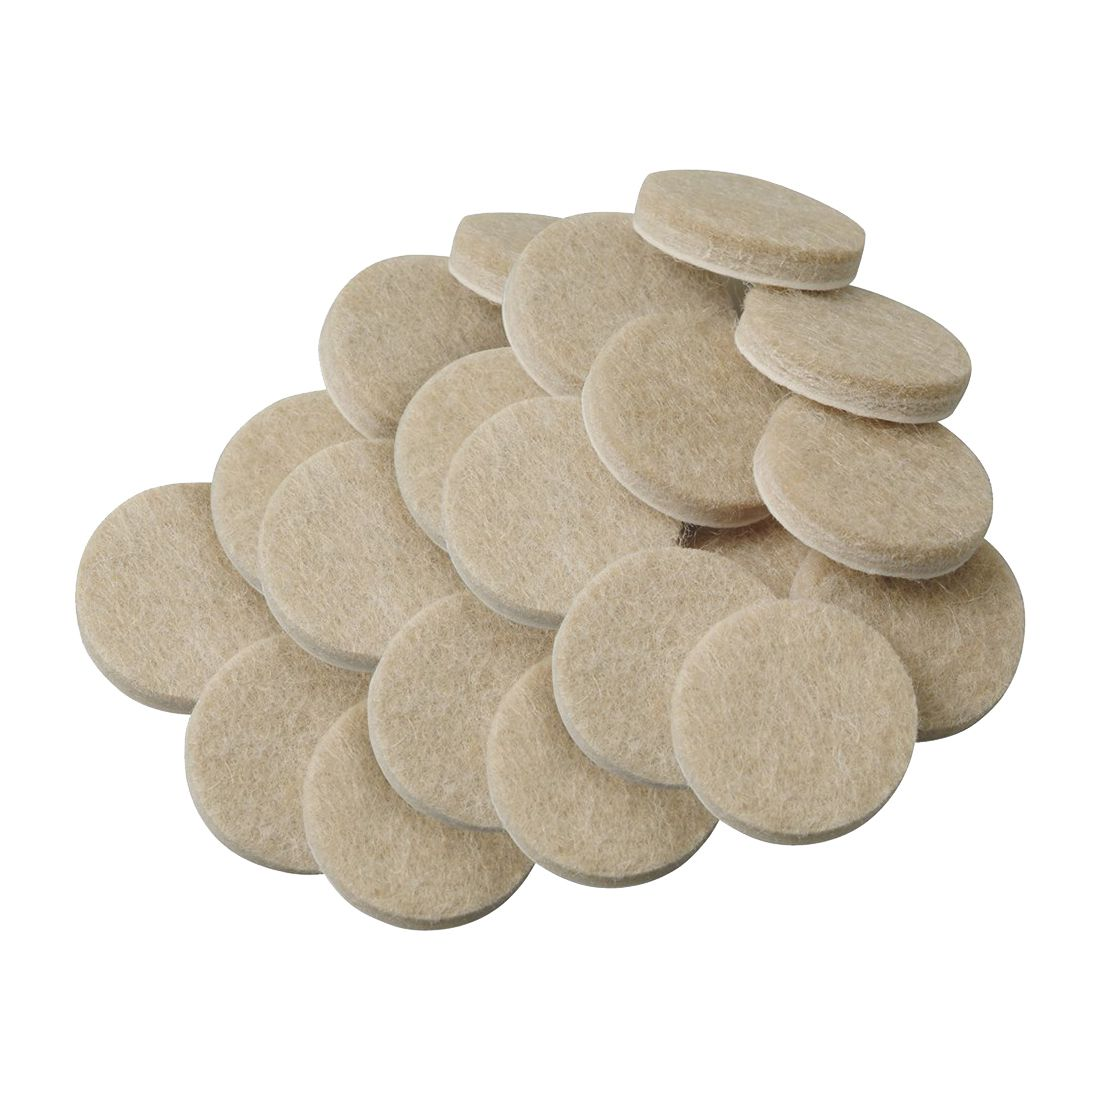 Hot Sale 20pcs Self-Stick 3/4 Inch Furniture Felt Pads For Hard Surfaces - Oatmeal, Round